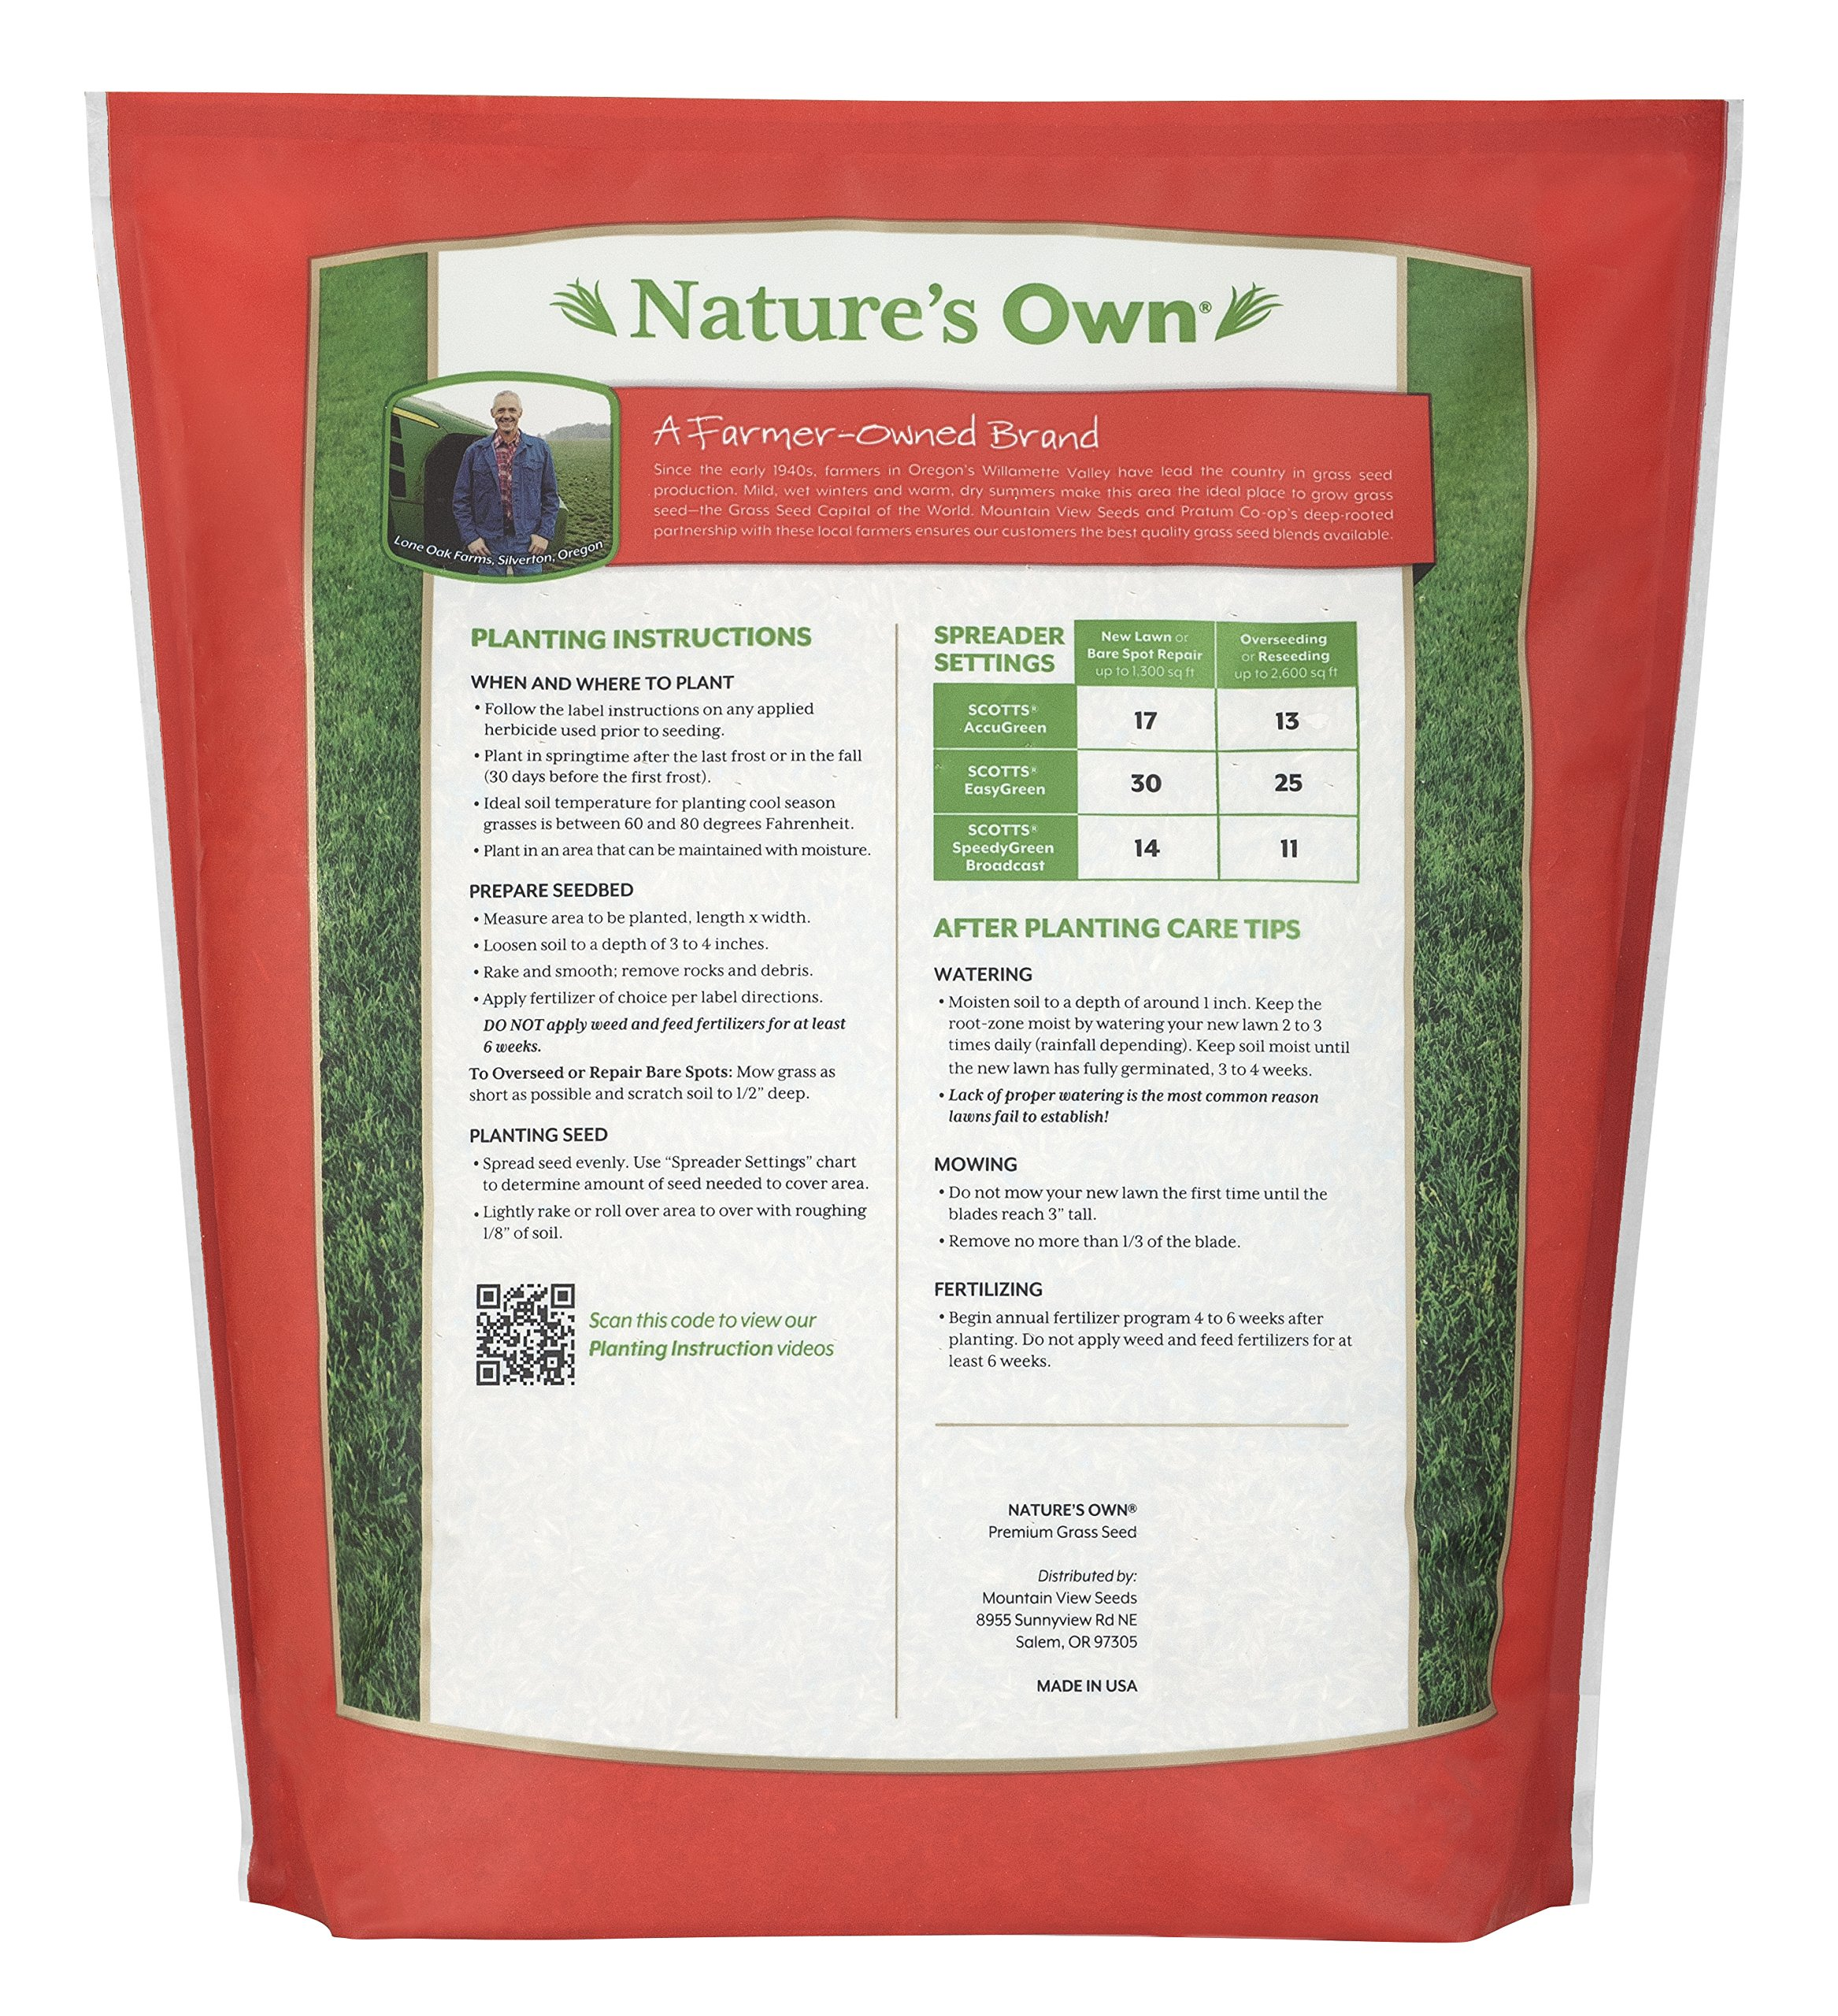 Mountain View Seeds Natures Own Sun & Shade Mix Grass Seed, 18-pounds by Mountain View Seed (Image #2)